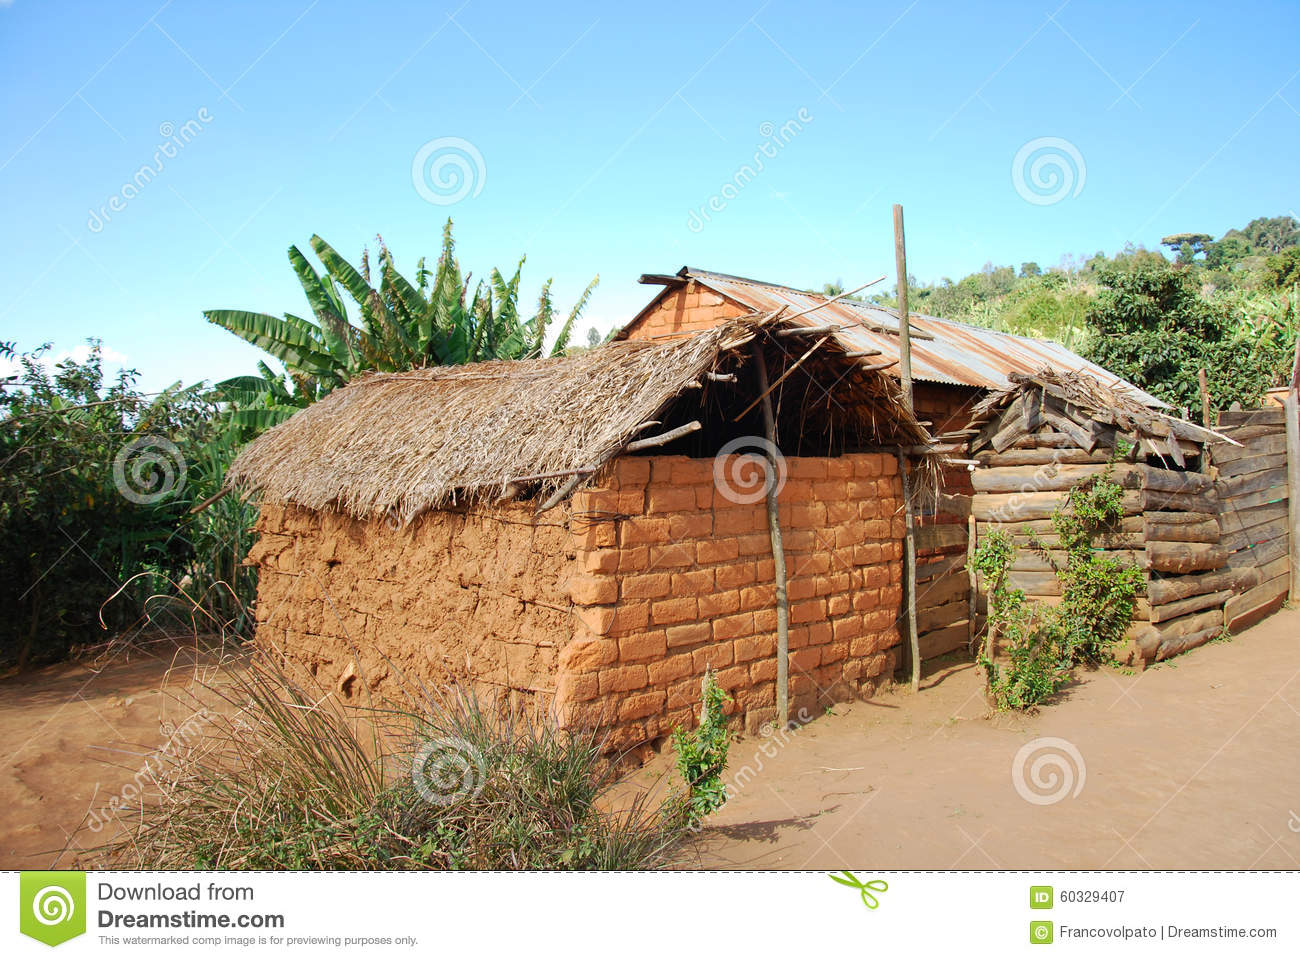 The Houses Of The Village Of Nguruwe In Tanzania Africa 95 Stock Photo Image 60329407